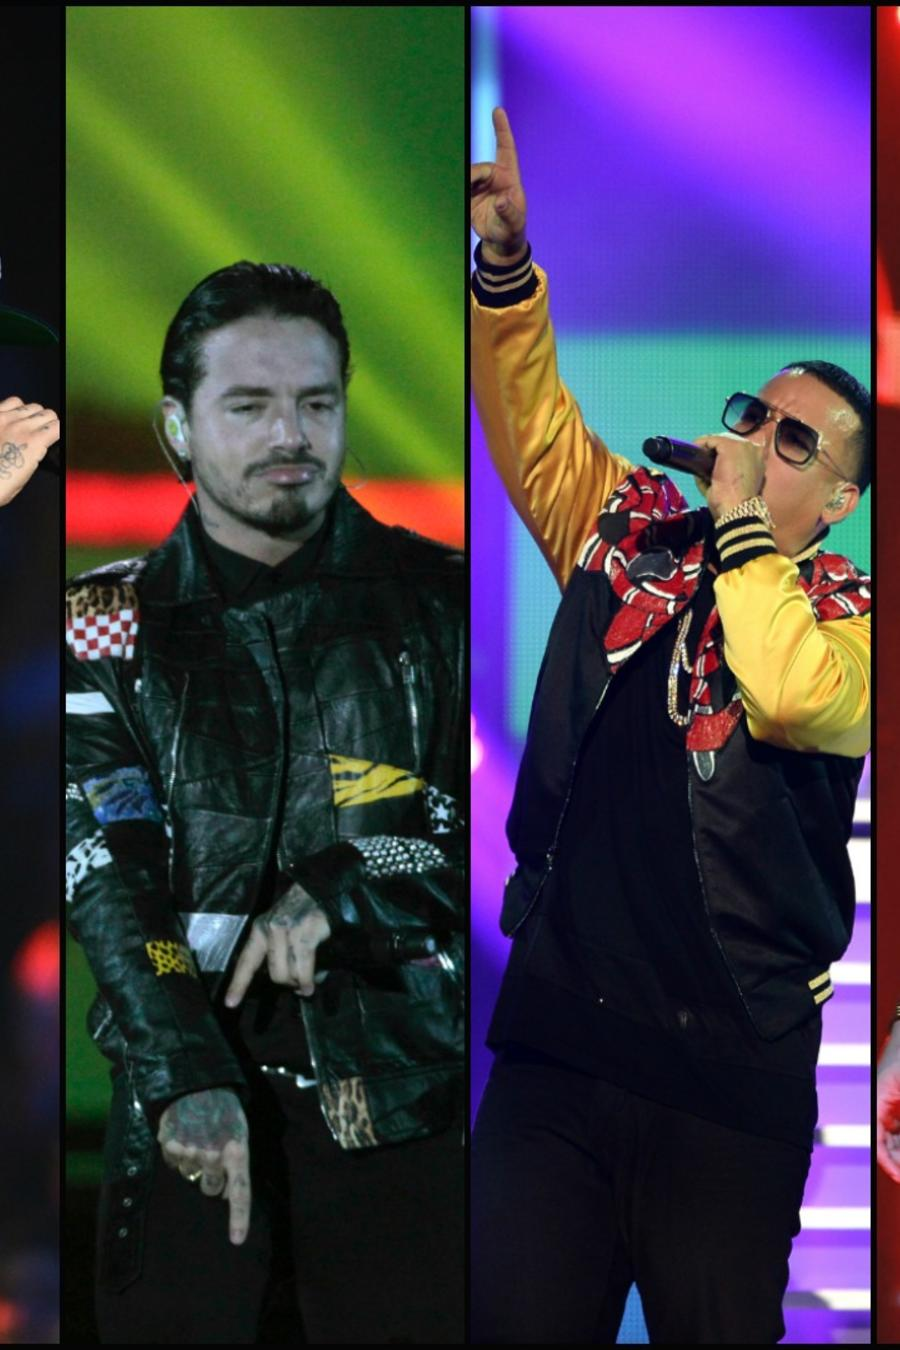 Nicky Jam, J Balvin, Daddy Yankee y Maluma - Collage